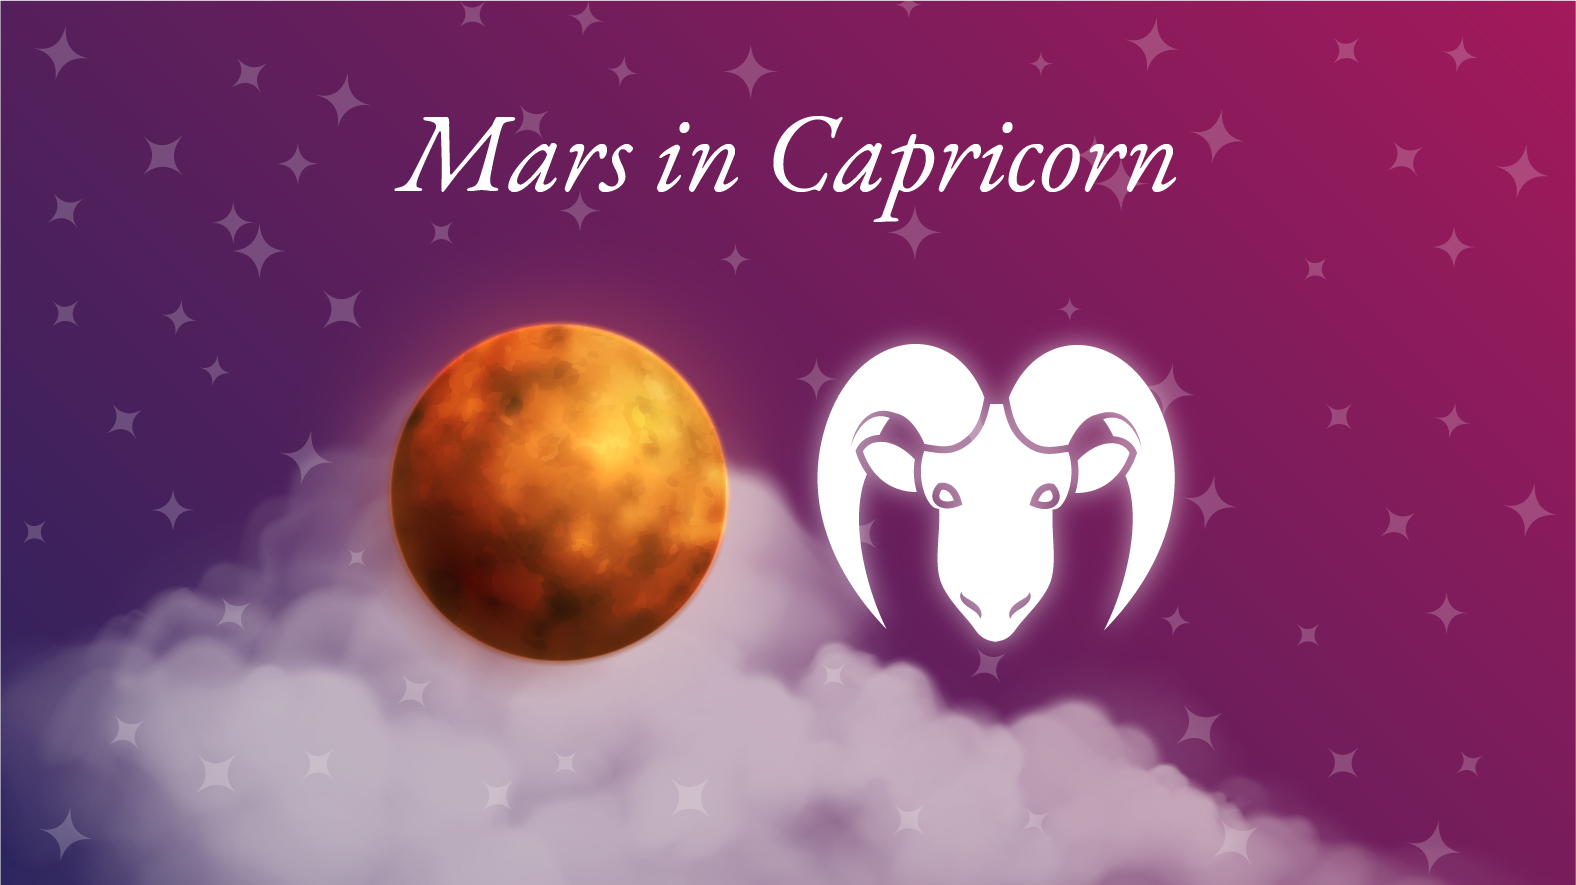 Mars in Capricorn Meaning